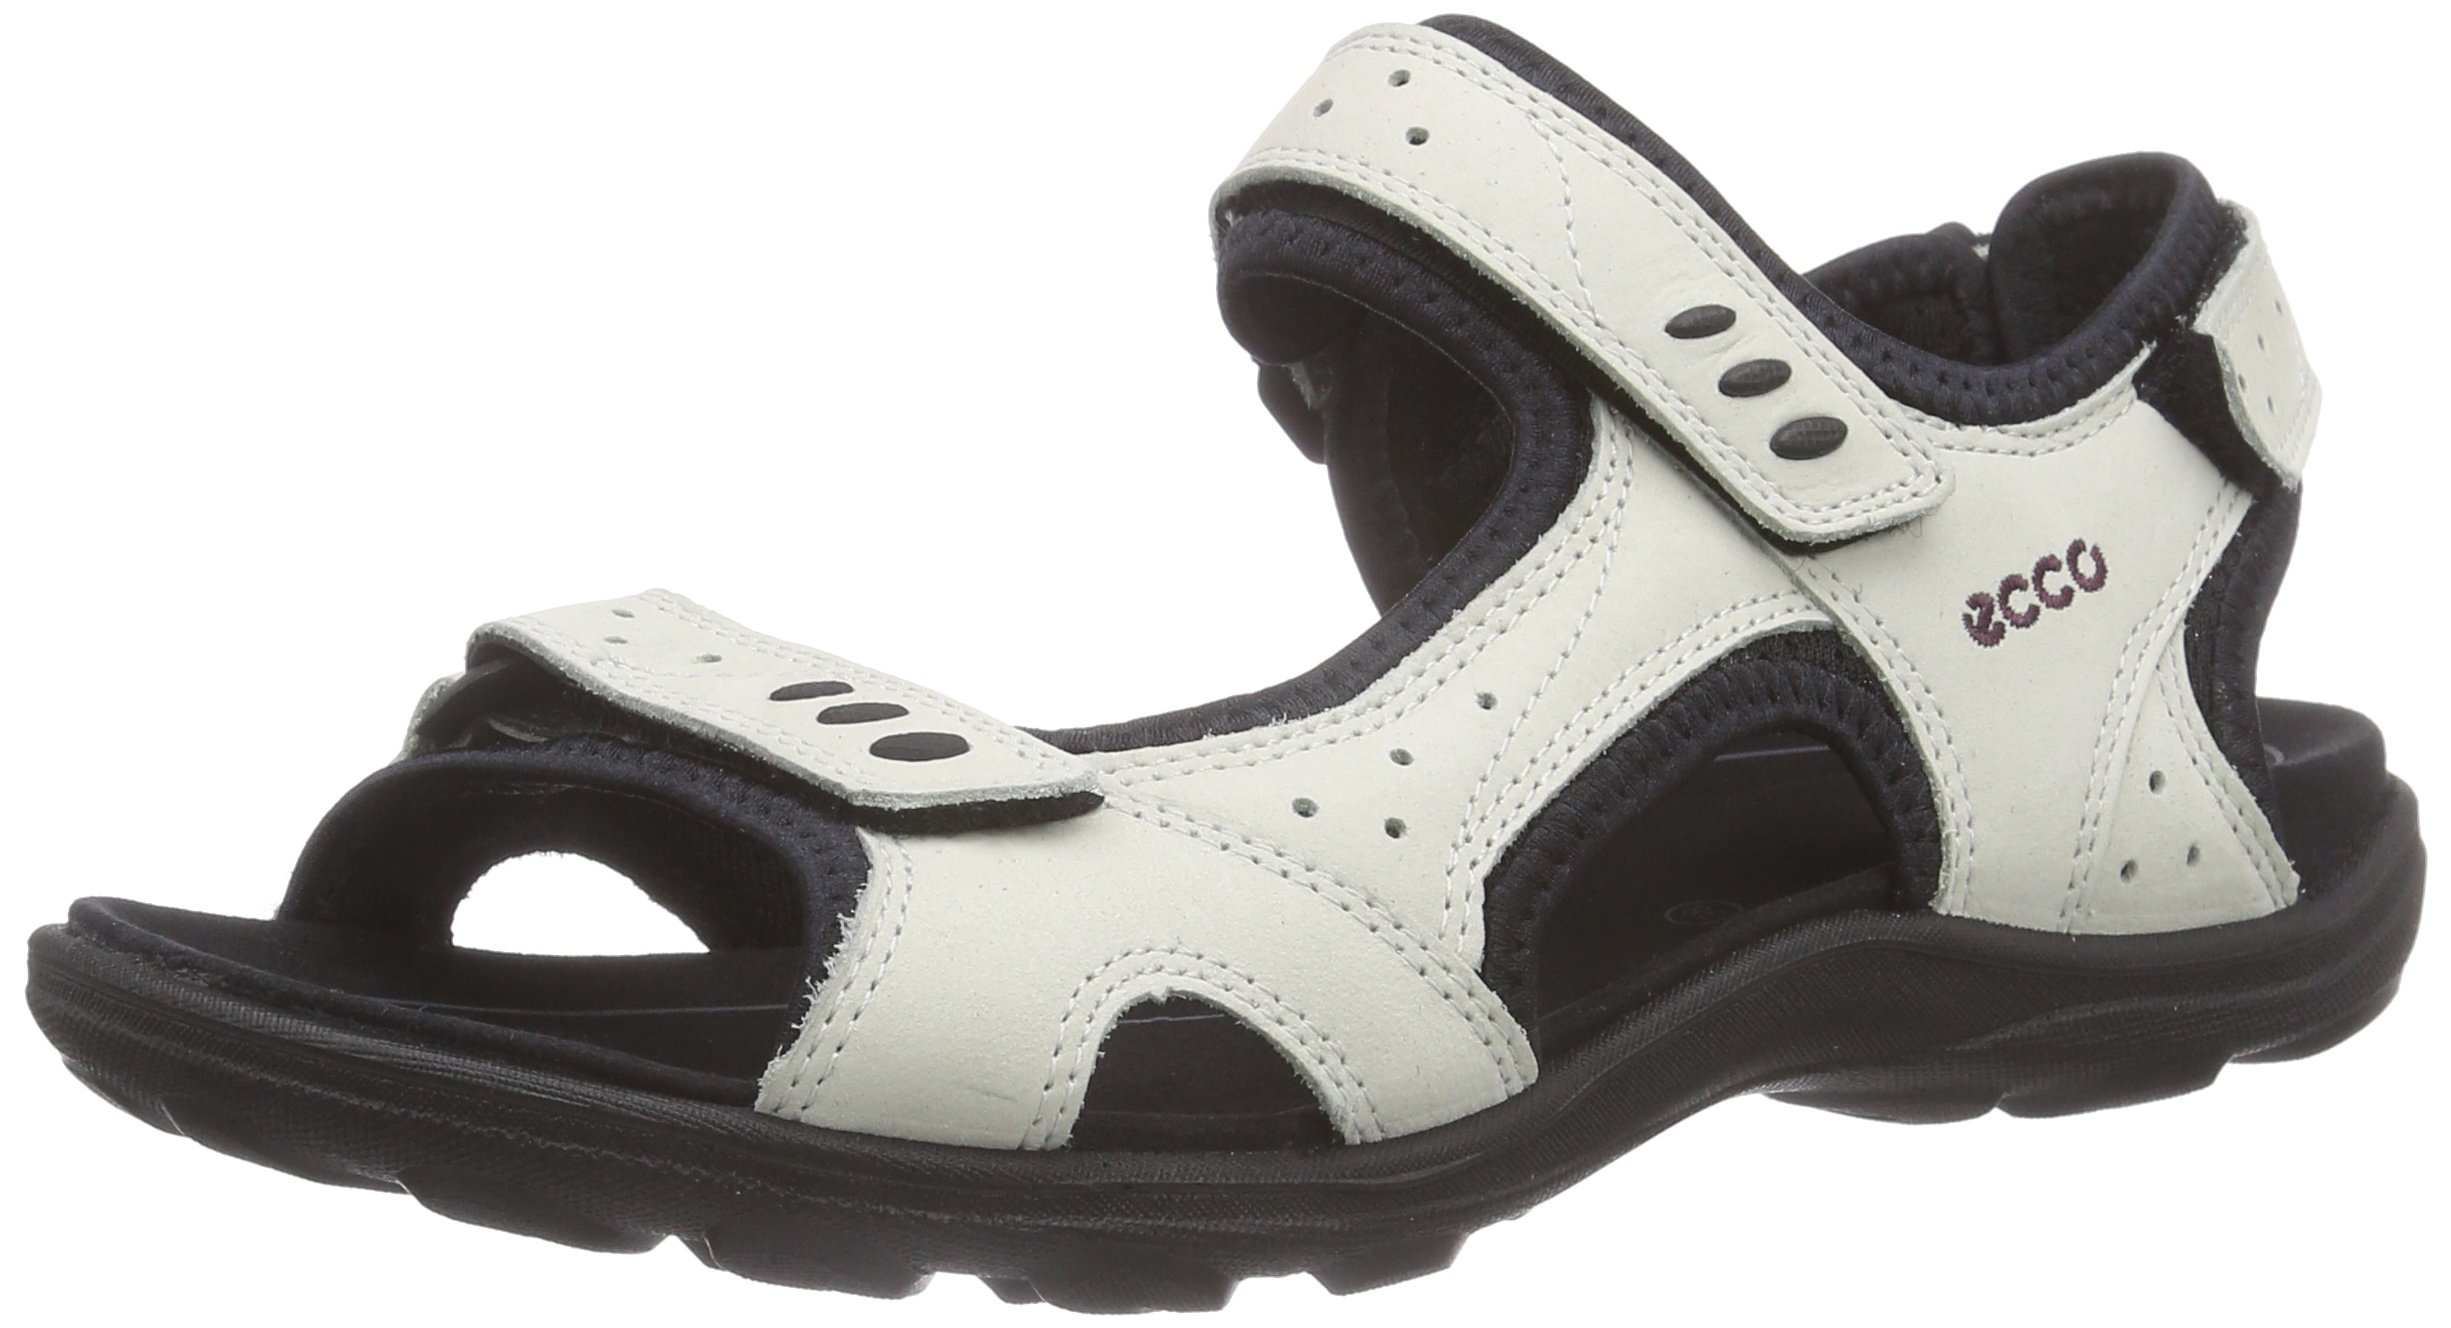 ECCO Women's Kana Sport Sandal, Shadow White, 38 EU/7-7.5 M US